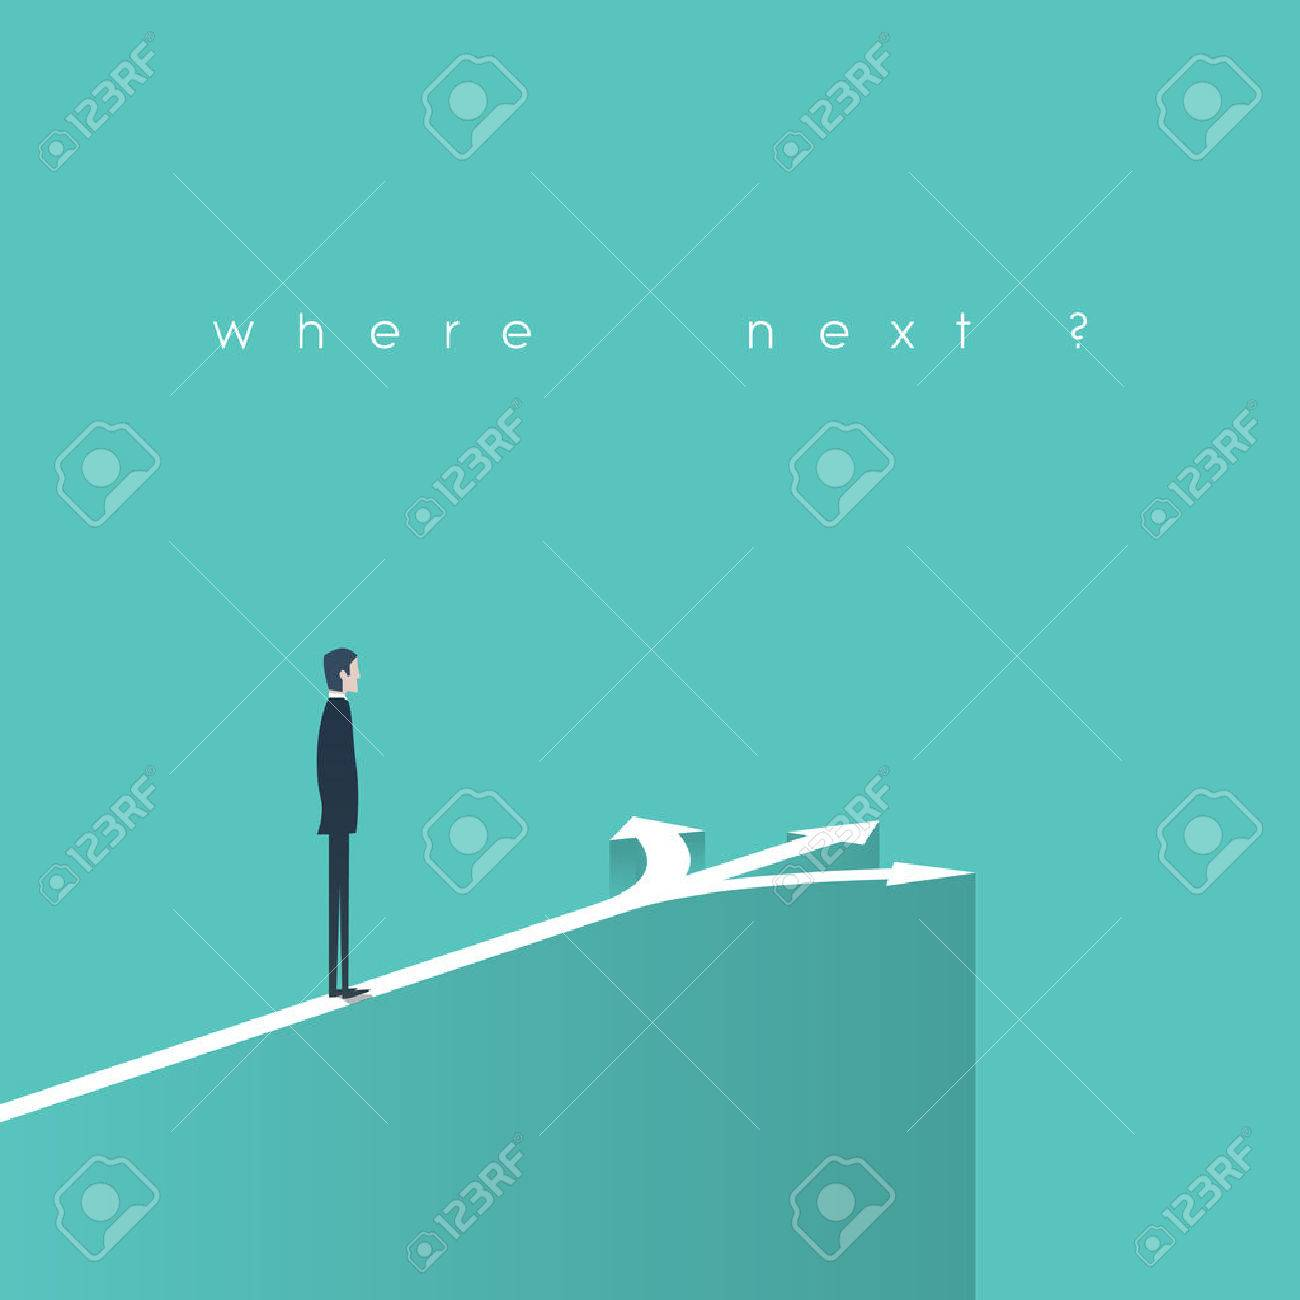 Business decision concept illustration. Businessman standing in front of arrows as symbol for choice, career path or opportunities. - 53159729